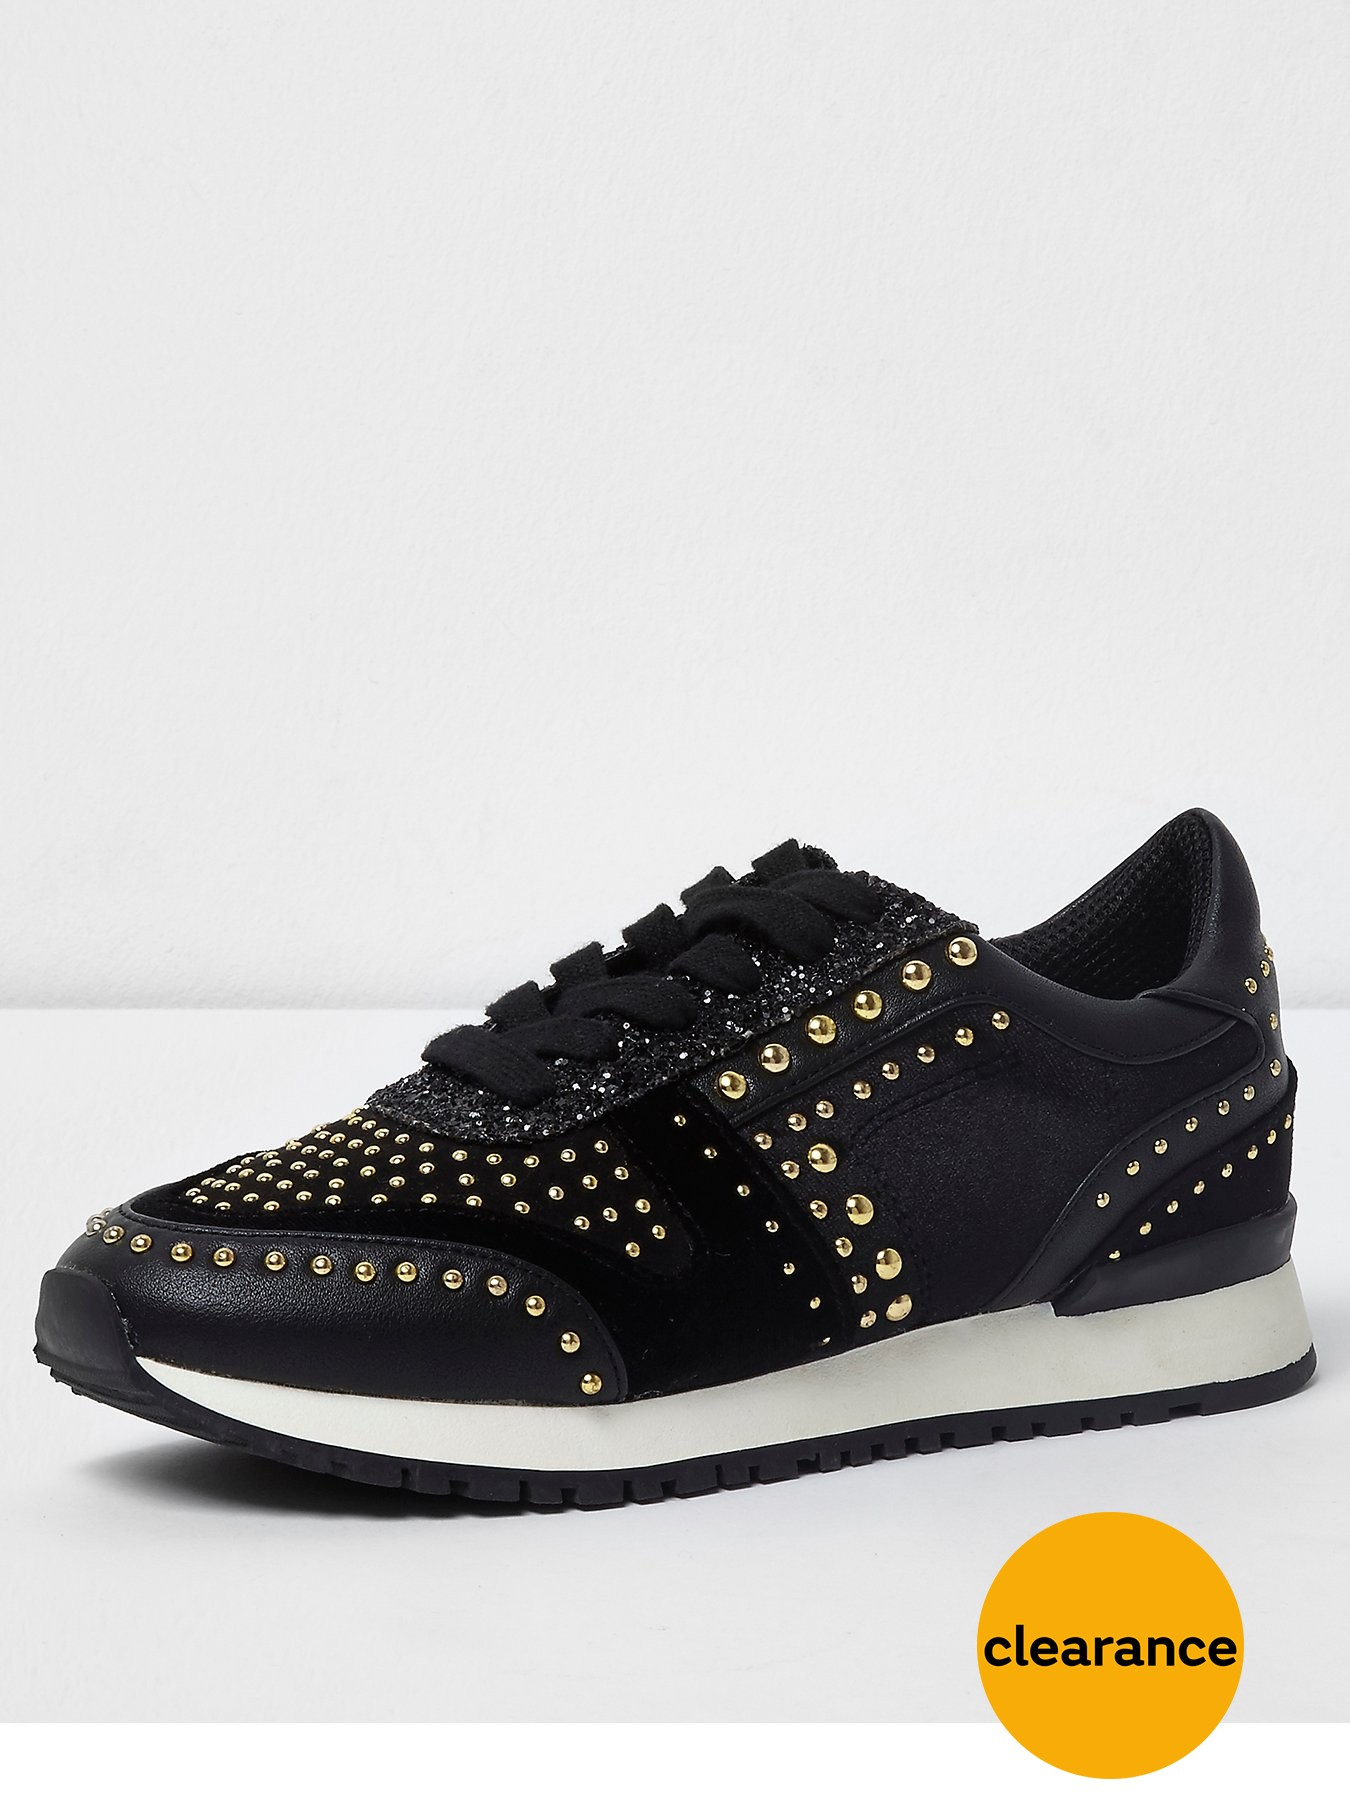 River Island Studded Trainers Black 1600220623 Women's Shoes River Island Trainers